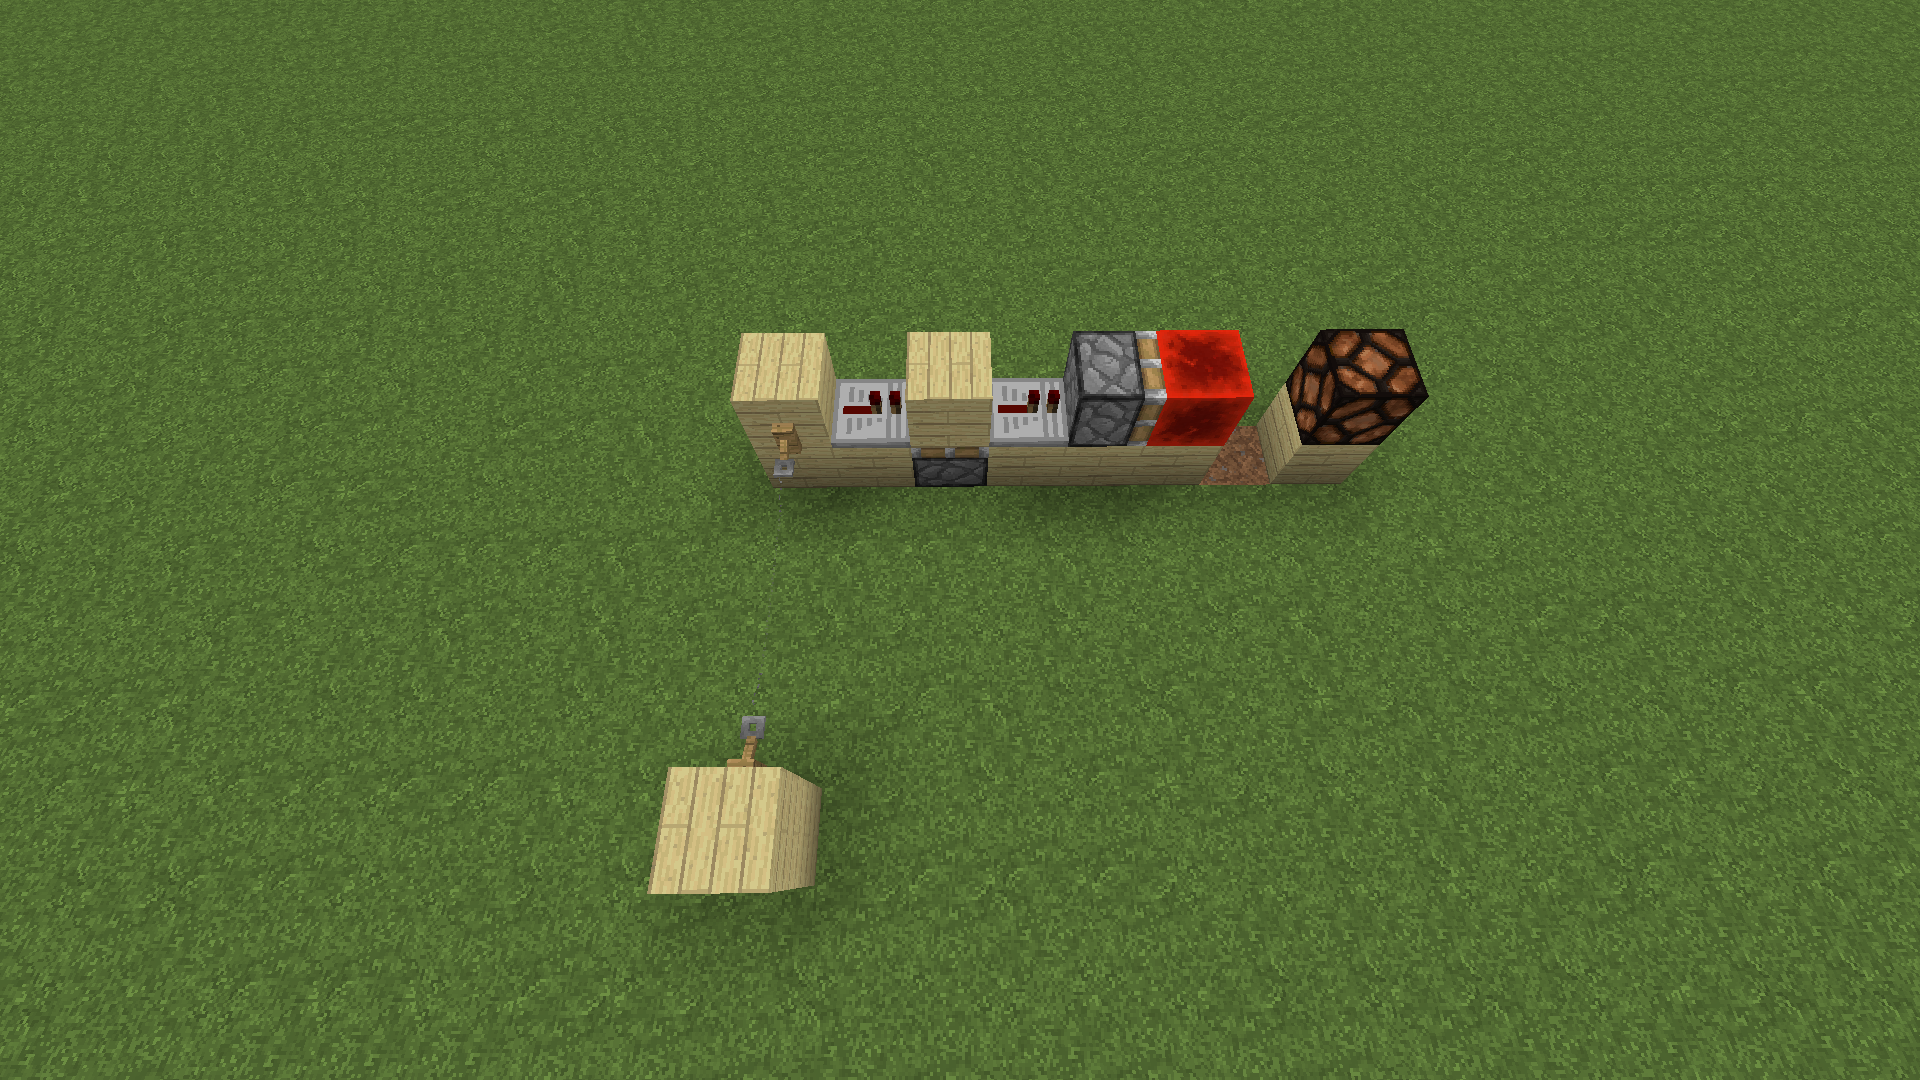 Need Redstone Tripwire Help Discussion And Mechanisms Flipflop Circuit Build Demo Youtube T Flip Flop Off